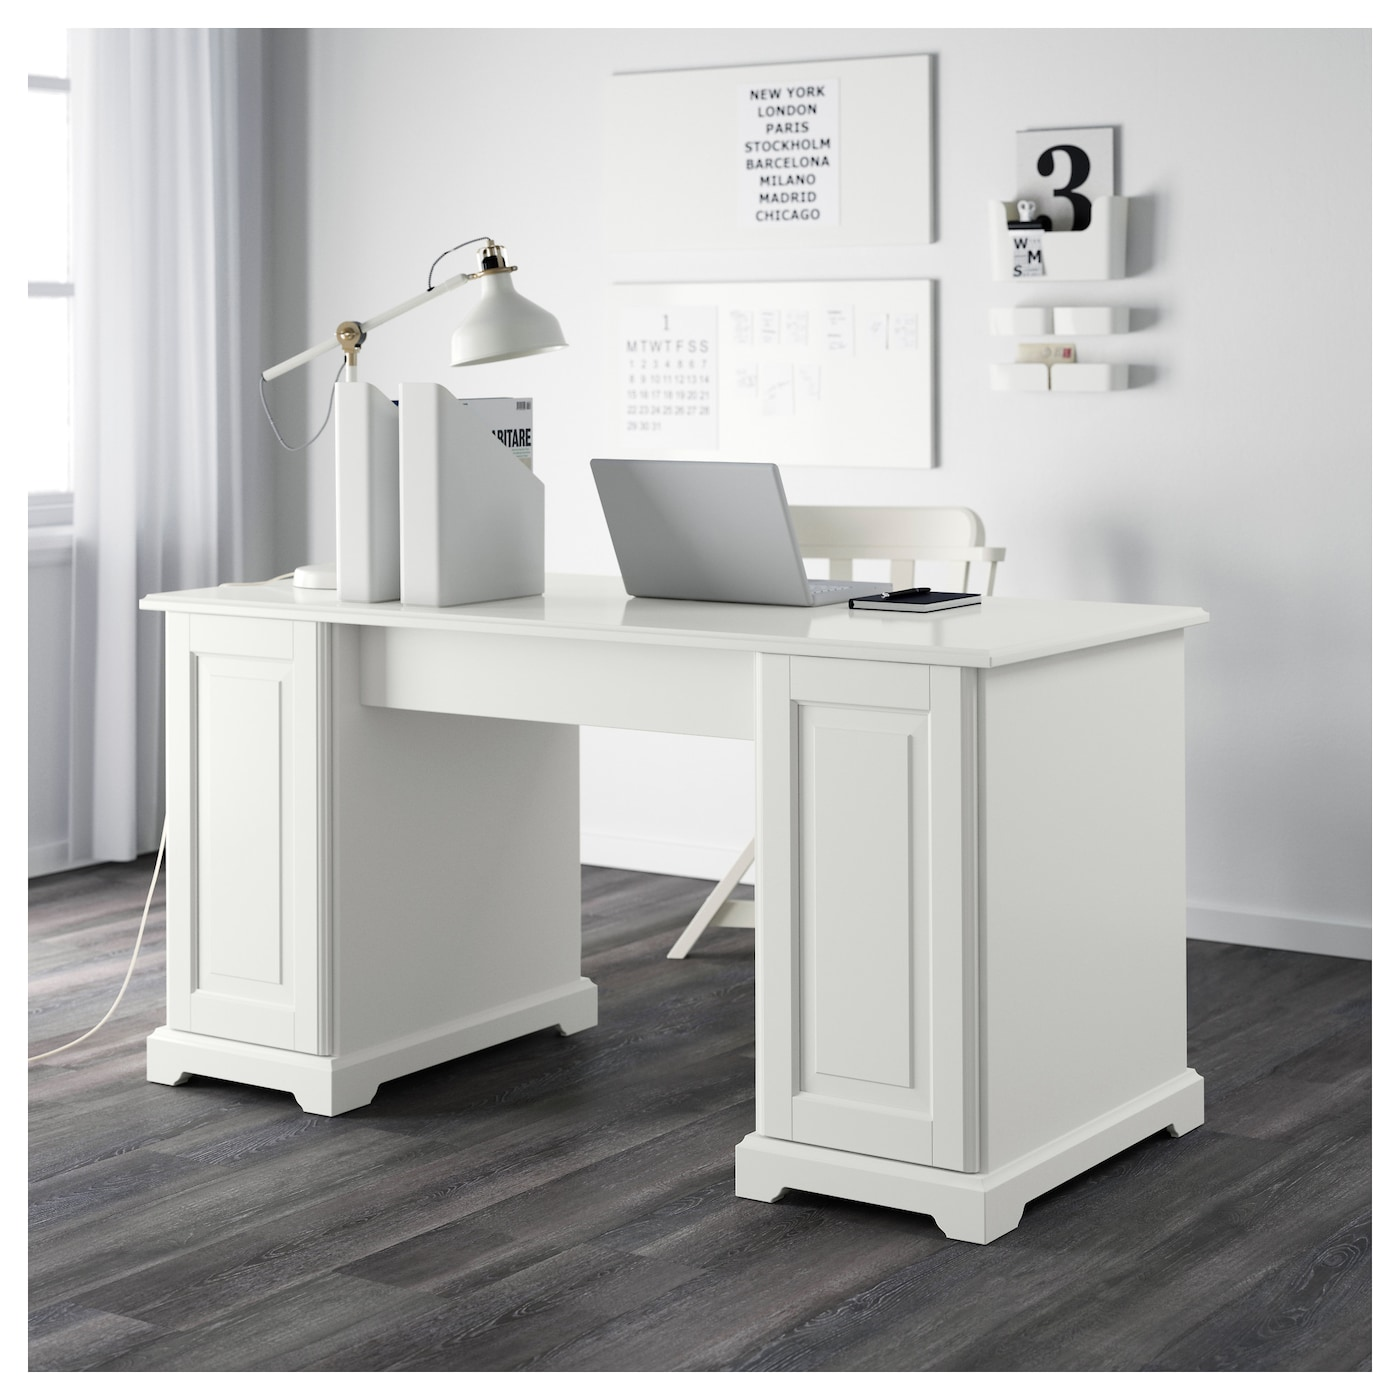 liatorp bureau blanc 145x65 cm ikea. Black Bedroom Furniture Sets. Home Design Ideas